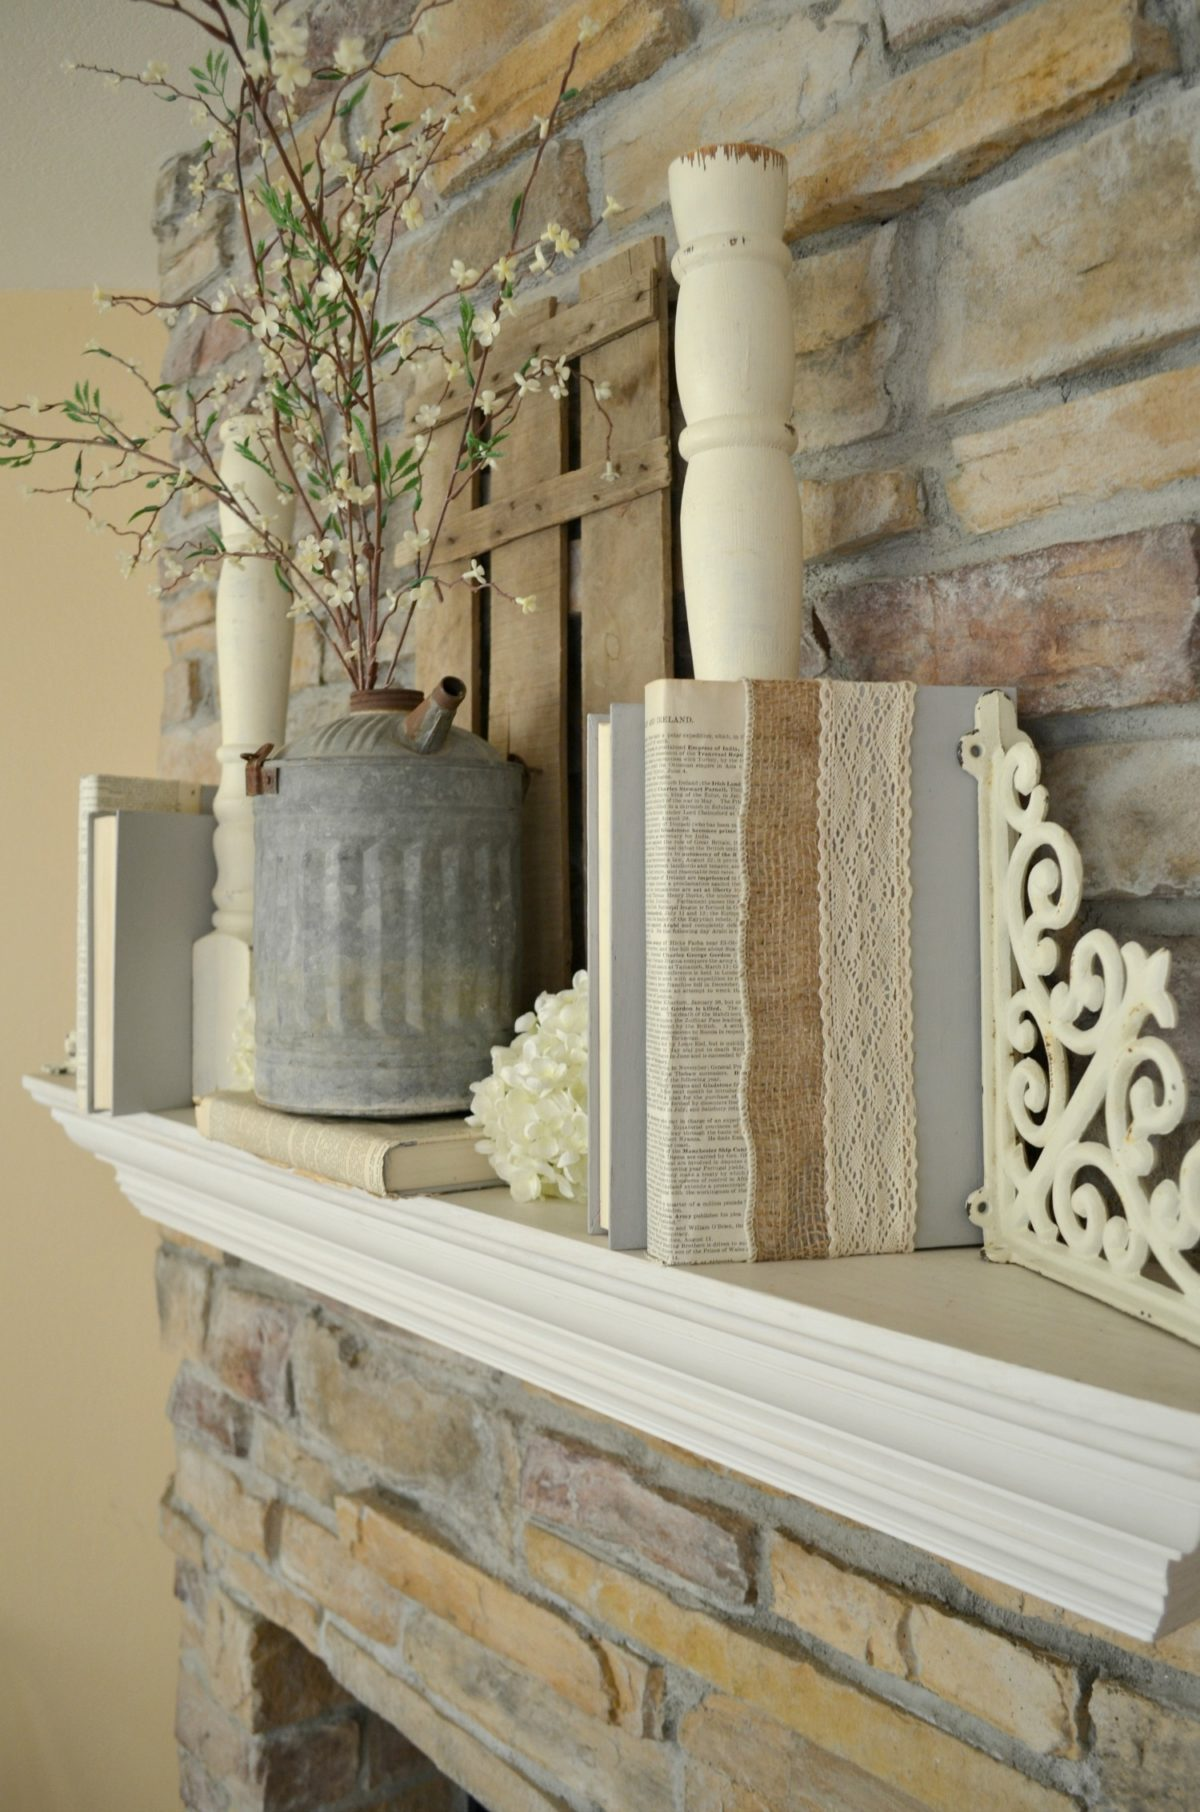 Farmhouse Mantel with Burlap and Lace Covered Books